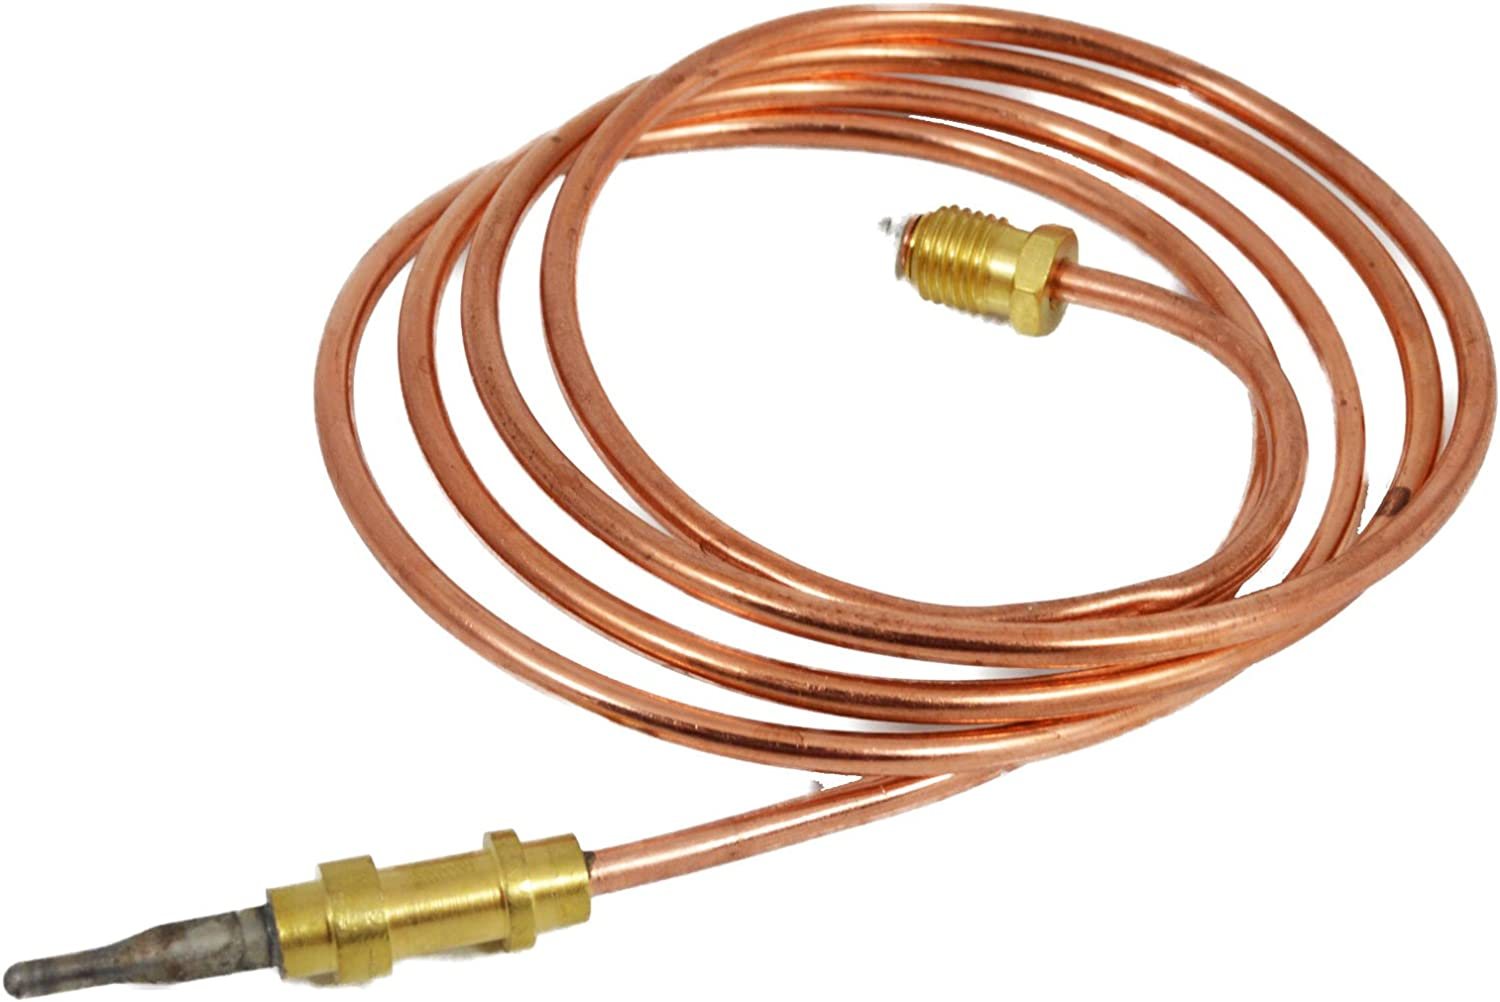 Thermocouple replacement for Superior Desa 098514-01 LP 098514-02 Heater Animer and price revision